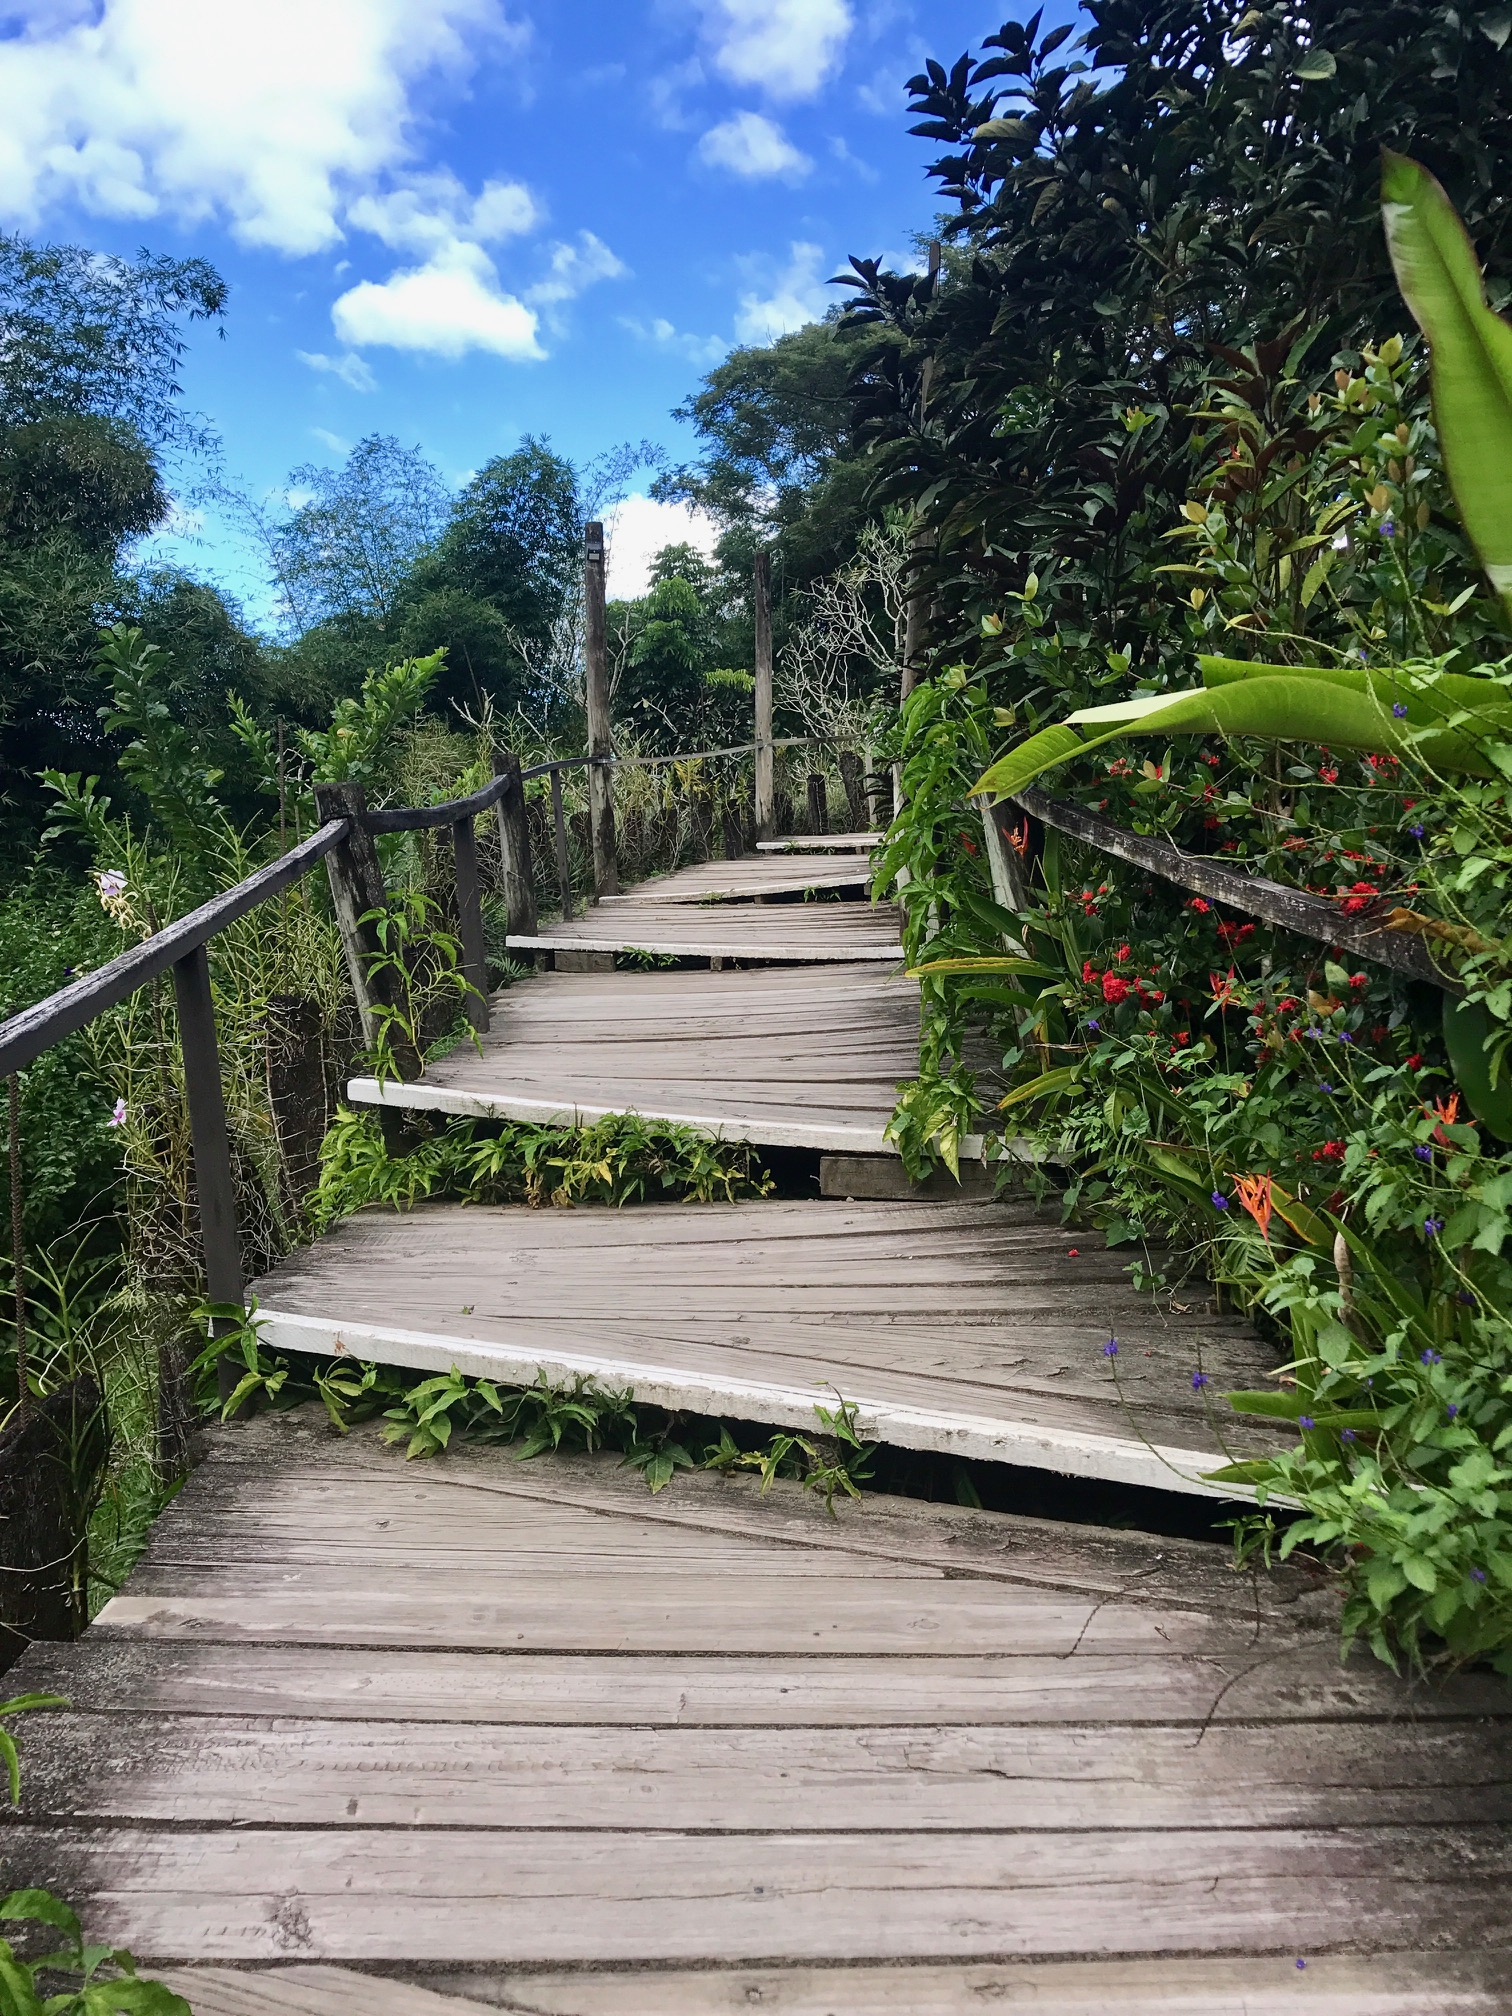 Stairway that leads to endless possibilities...  Final thought: If you find a path that tugs at your heart, tickles your brain, or peaks your interest, take it. You may not know where it will lead, but the process of getting there, may change your life. :)